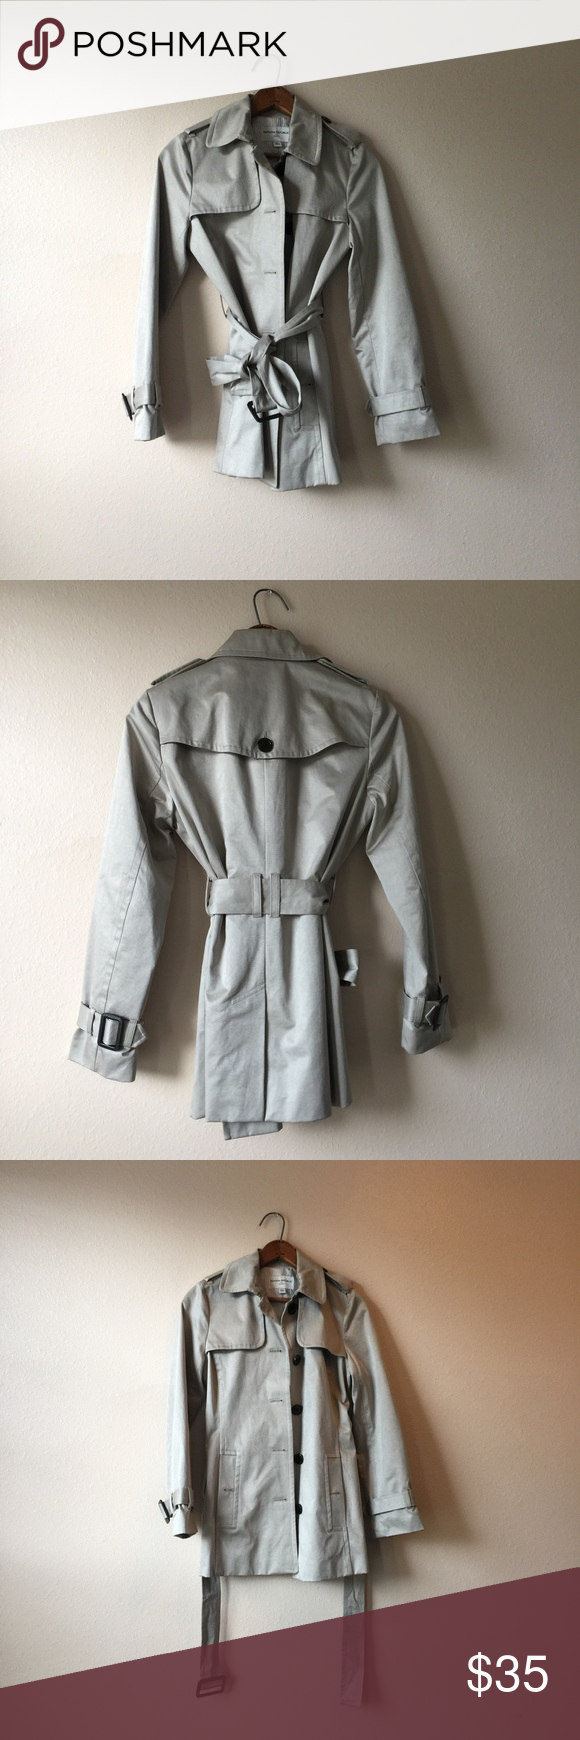 Banana Republic Trench Coat Size XS Banana Republic Trench